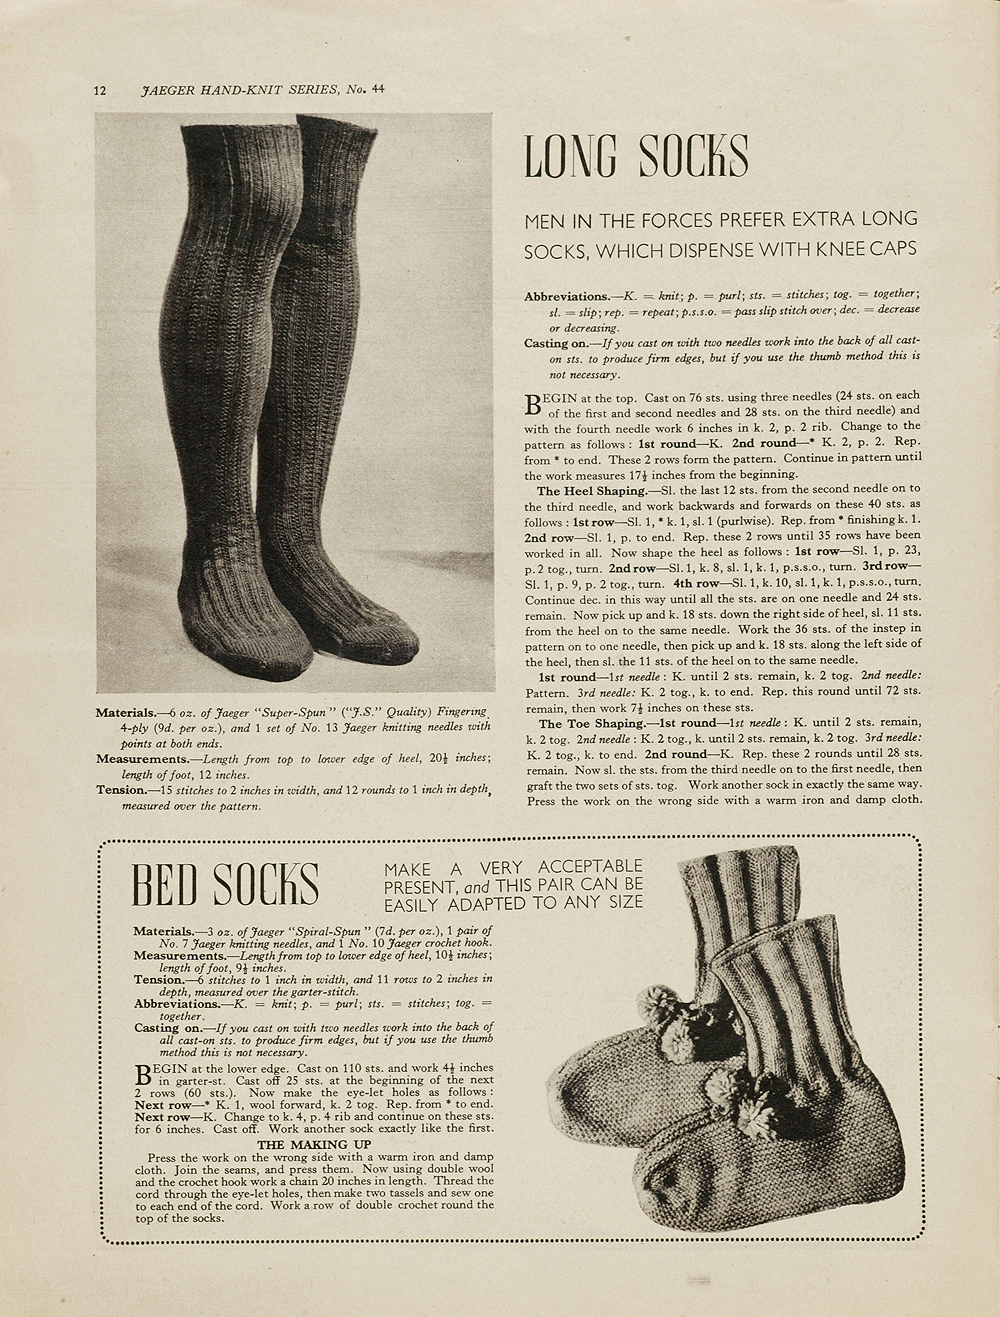 Homespun stitchworks for the love of vintage free patterns long socks and bed socks pattern for long socks and bed socks from essentials for the forces jaeger handknit bankloansurffo Image collections